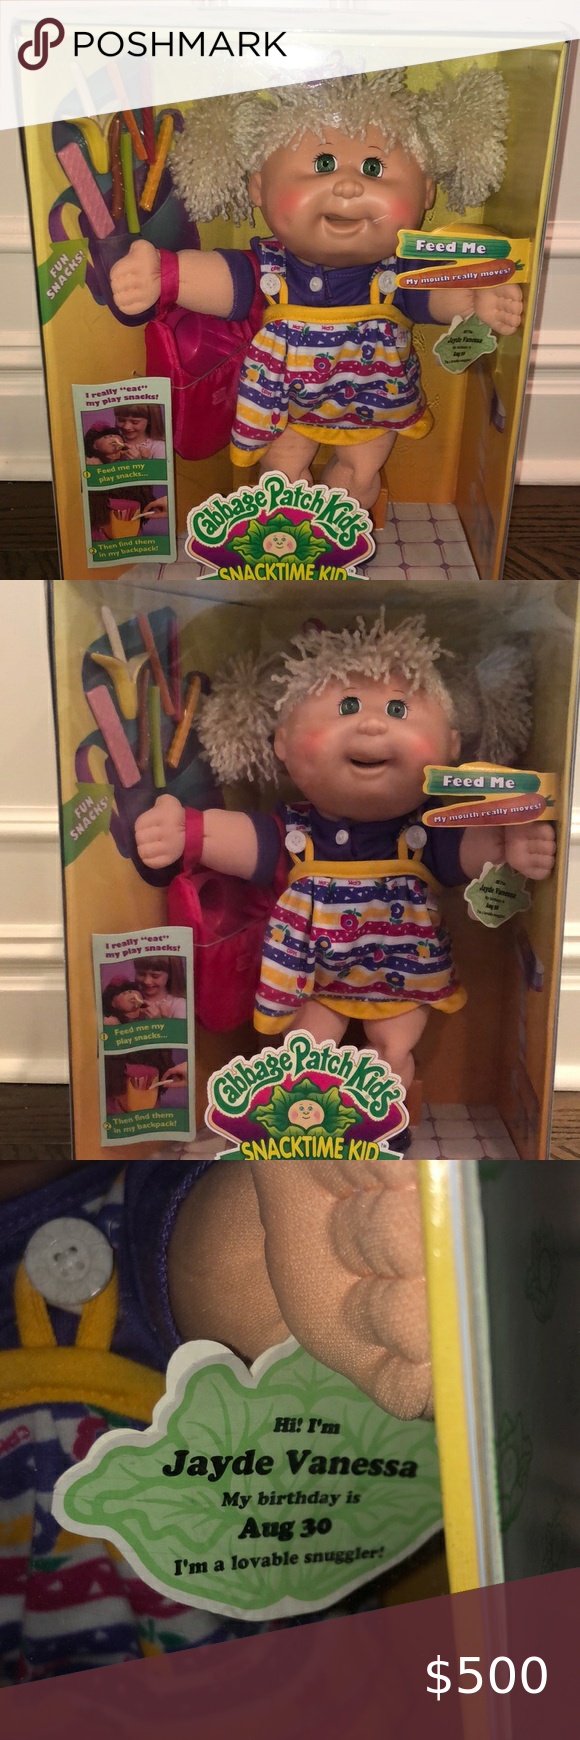 Rare 1995 Cabbage Patch Snacktime Kid Doll In Box Never Opened Excellent Condition Rare Discontinued Doll Vintage 1995 Child Doll Doll Toys Doll Accessories